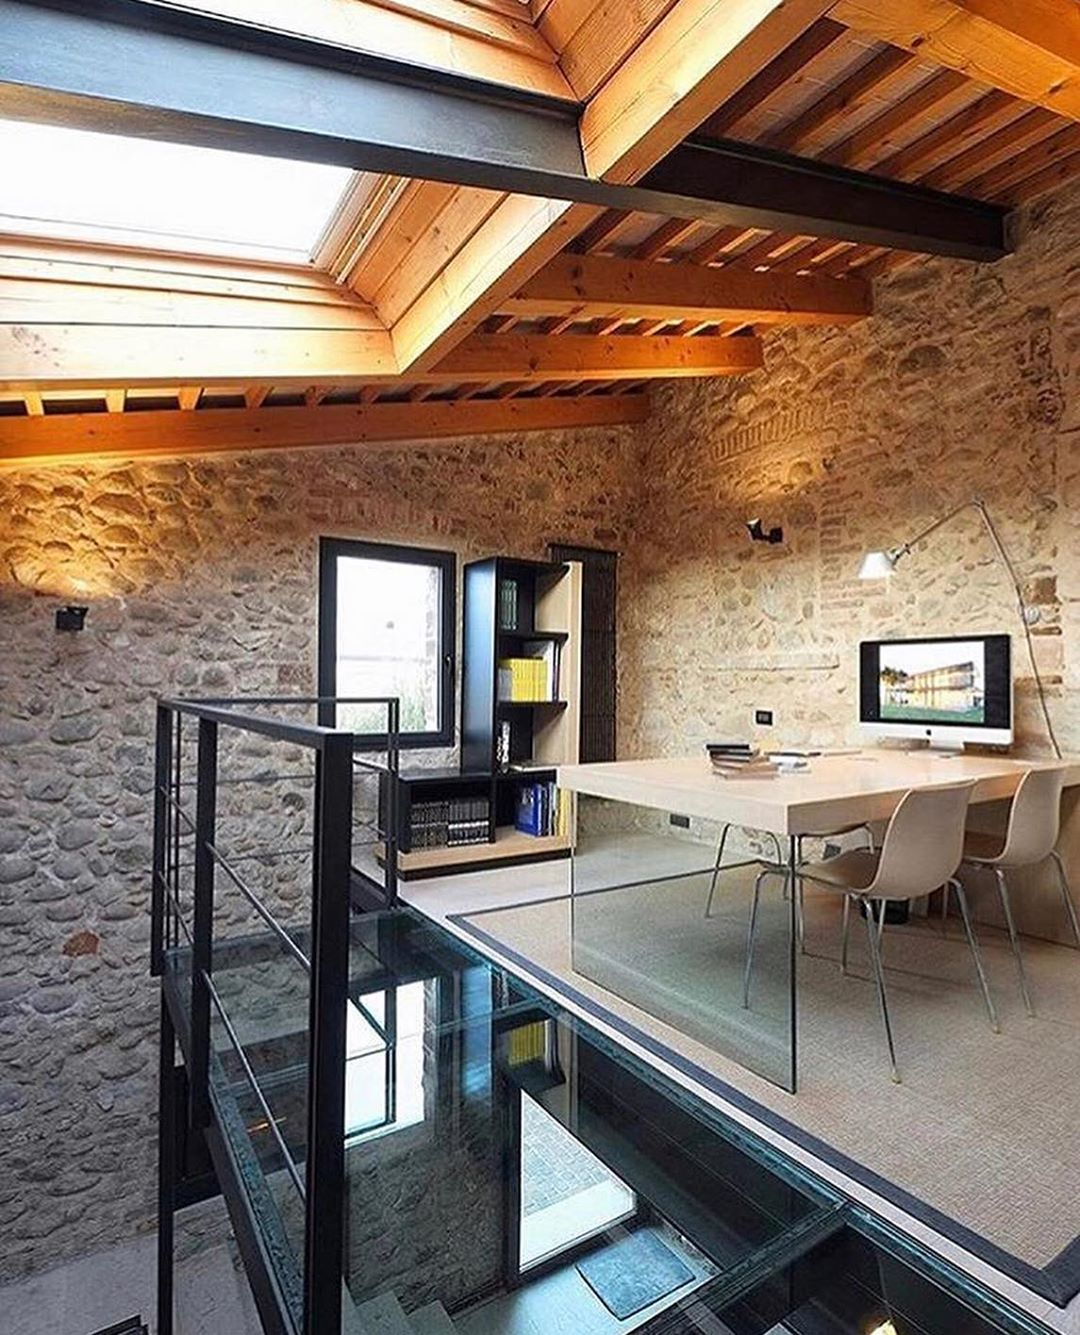 Architetto Bassano Del Grappa house ba renovation, bassano del grappa, #italy by